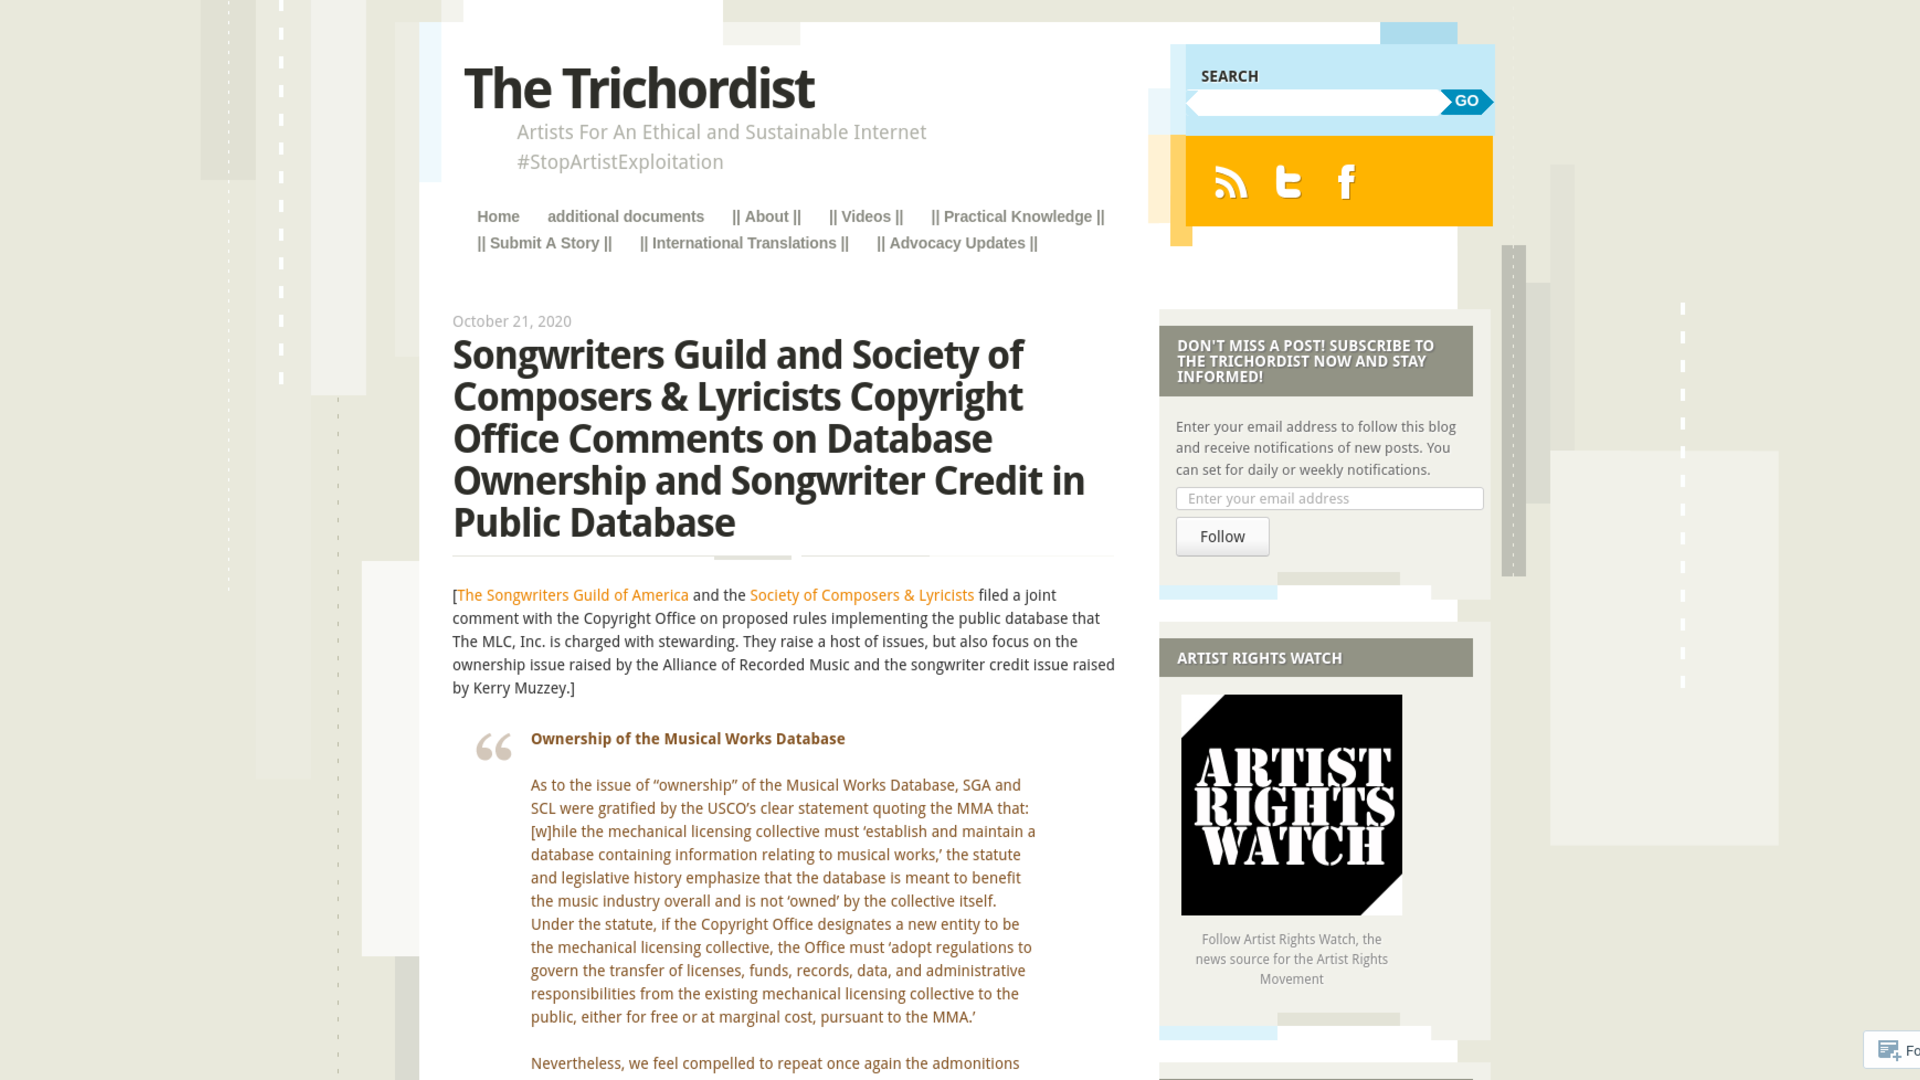 Fairness Rocks News Songwriters Guild and Society of Composers & Lyricists Copyright Office Comments on Database Ownership and Songwriter Credit in Public Database